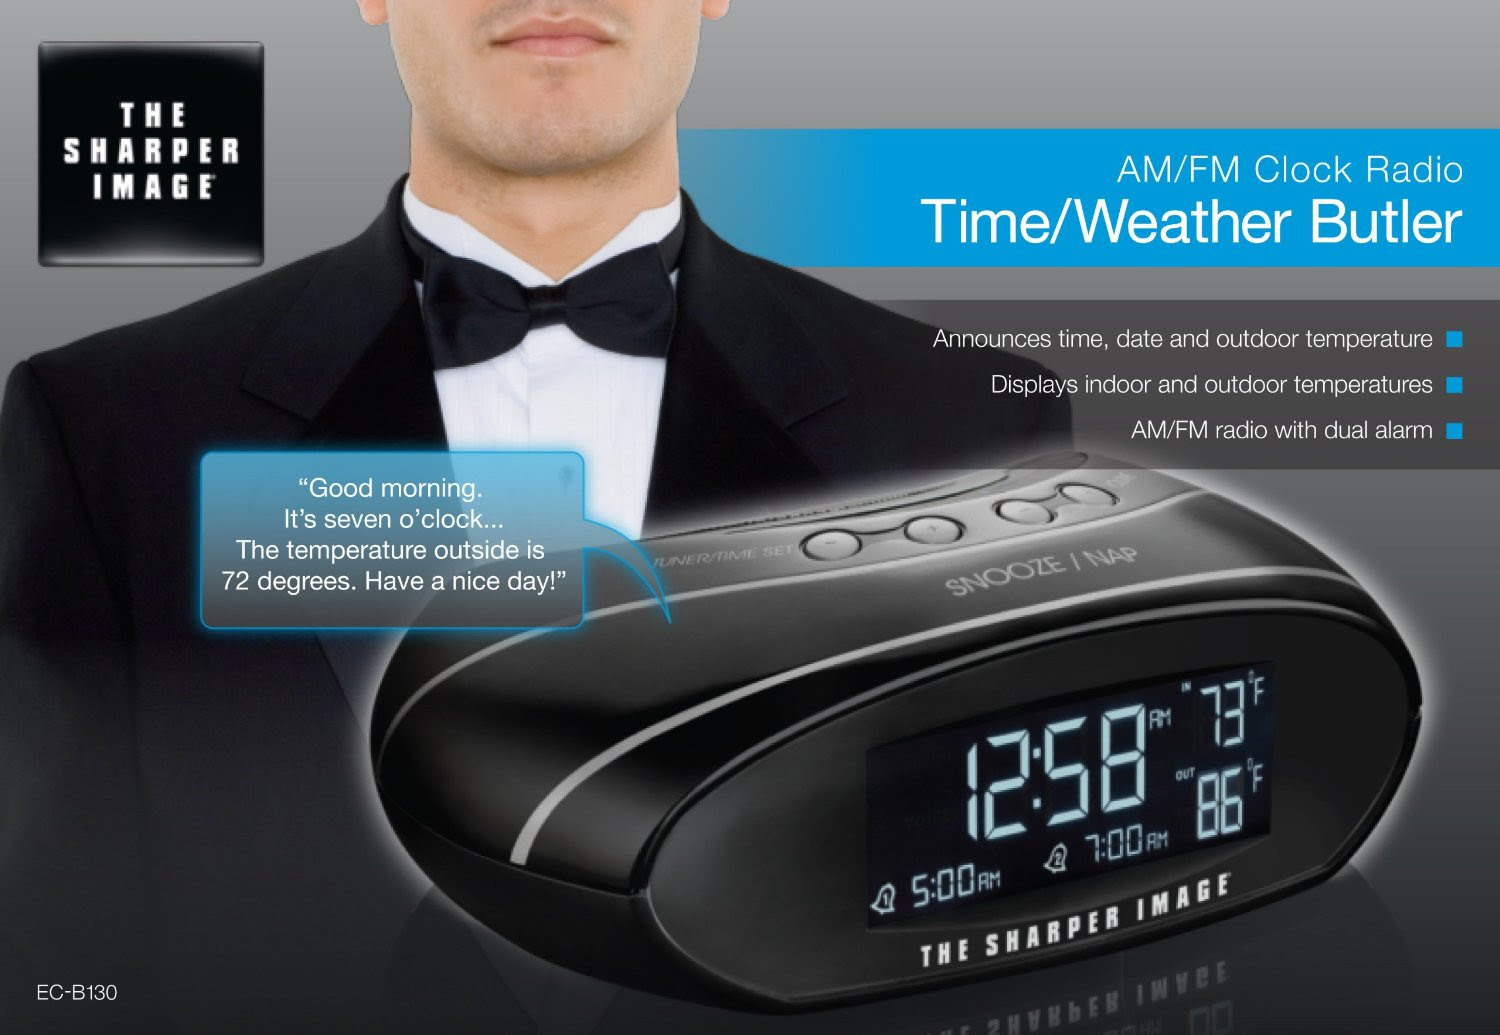 The Sharper Image Amfm Clock Radio